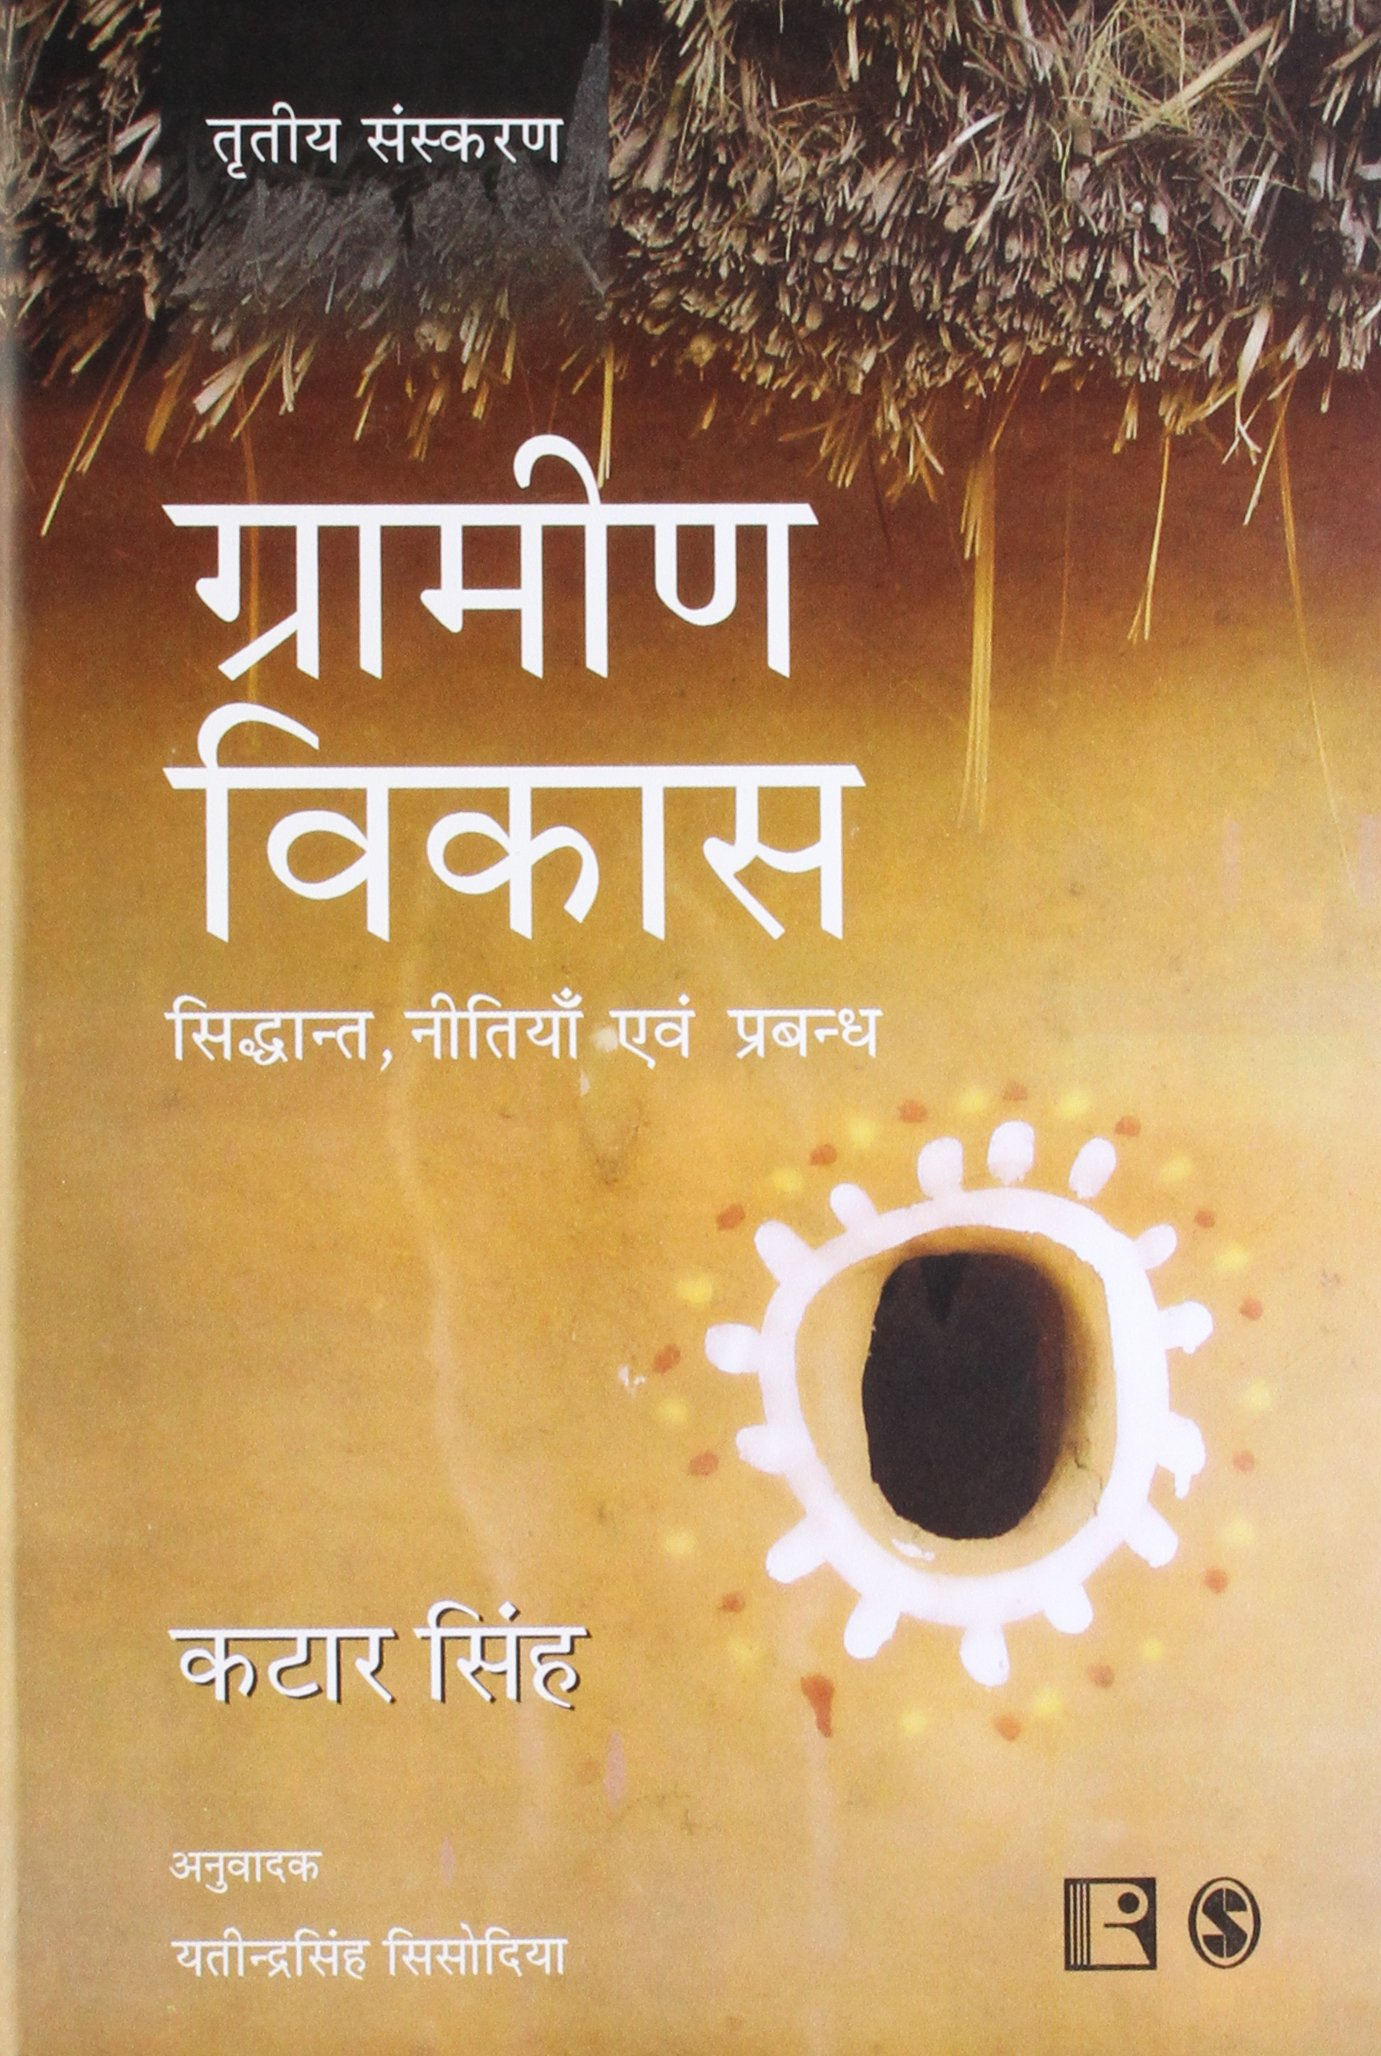 in buy gramin vikas rural development hindi hb book  in buy gramin vikas rural development hindi hb book online at low prices in gramin vikas rural development hindi hb reviews